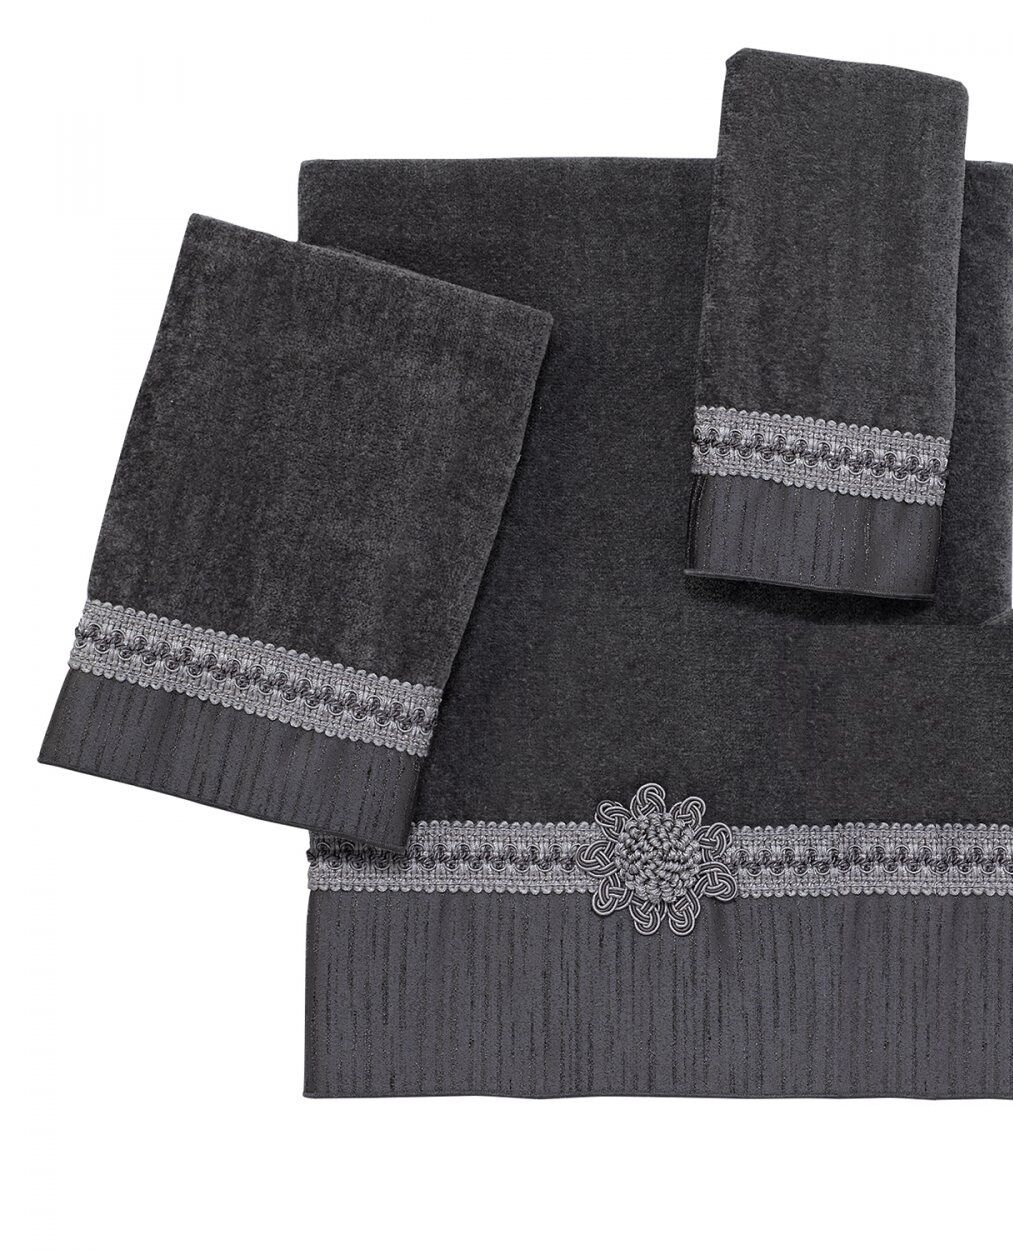 Braided Medallion 3 Piece Bath Towel Hand Towel and Fingertip Towel Set Granite